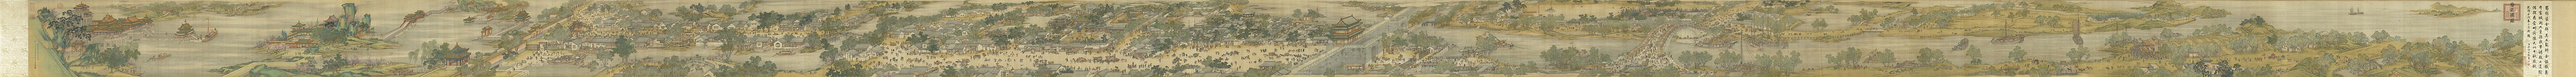 "Court style panorama Along the River During the Qingming Festival, an 18th-century copy of 12th century Song Dynasty original by Chinese artist Zhang Zeduan. Zhang's original painting is revered by scholars as ""one of Chinese civilization's greatest masterpieces.""[33] The scroll begins at the right end, and culminates above as the Emperor boards his yacht to join the festive boats on the river. Note the exceptionally large viewing stones placed at the far edge of the inlet."